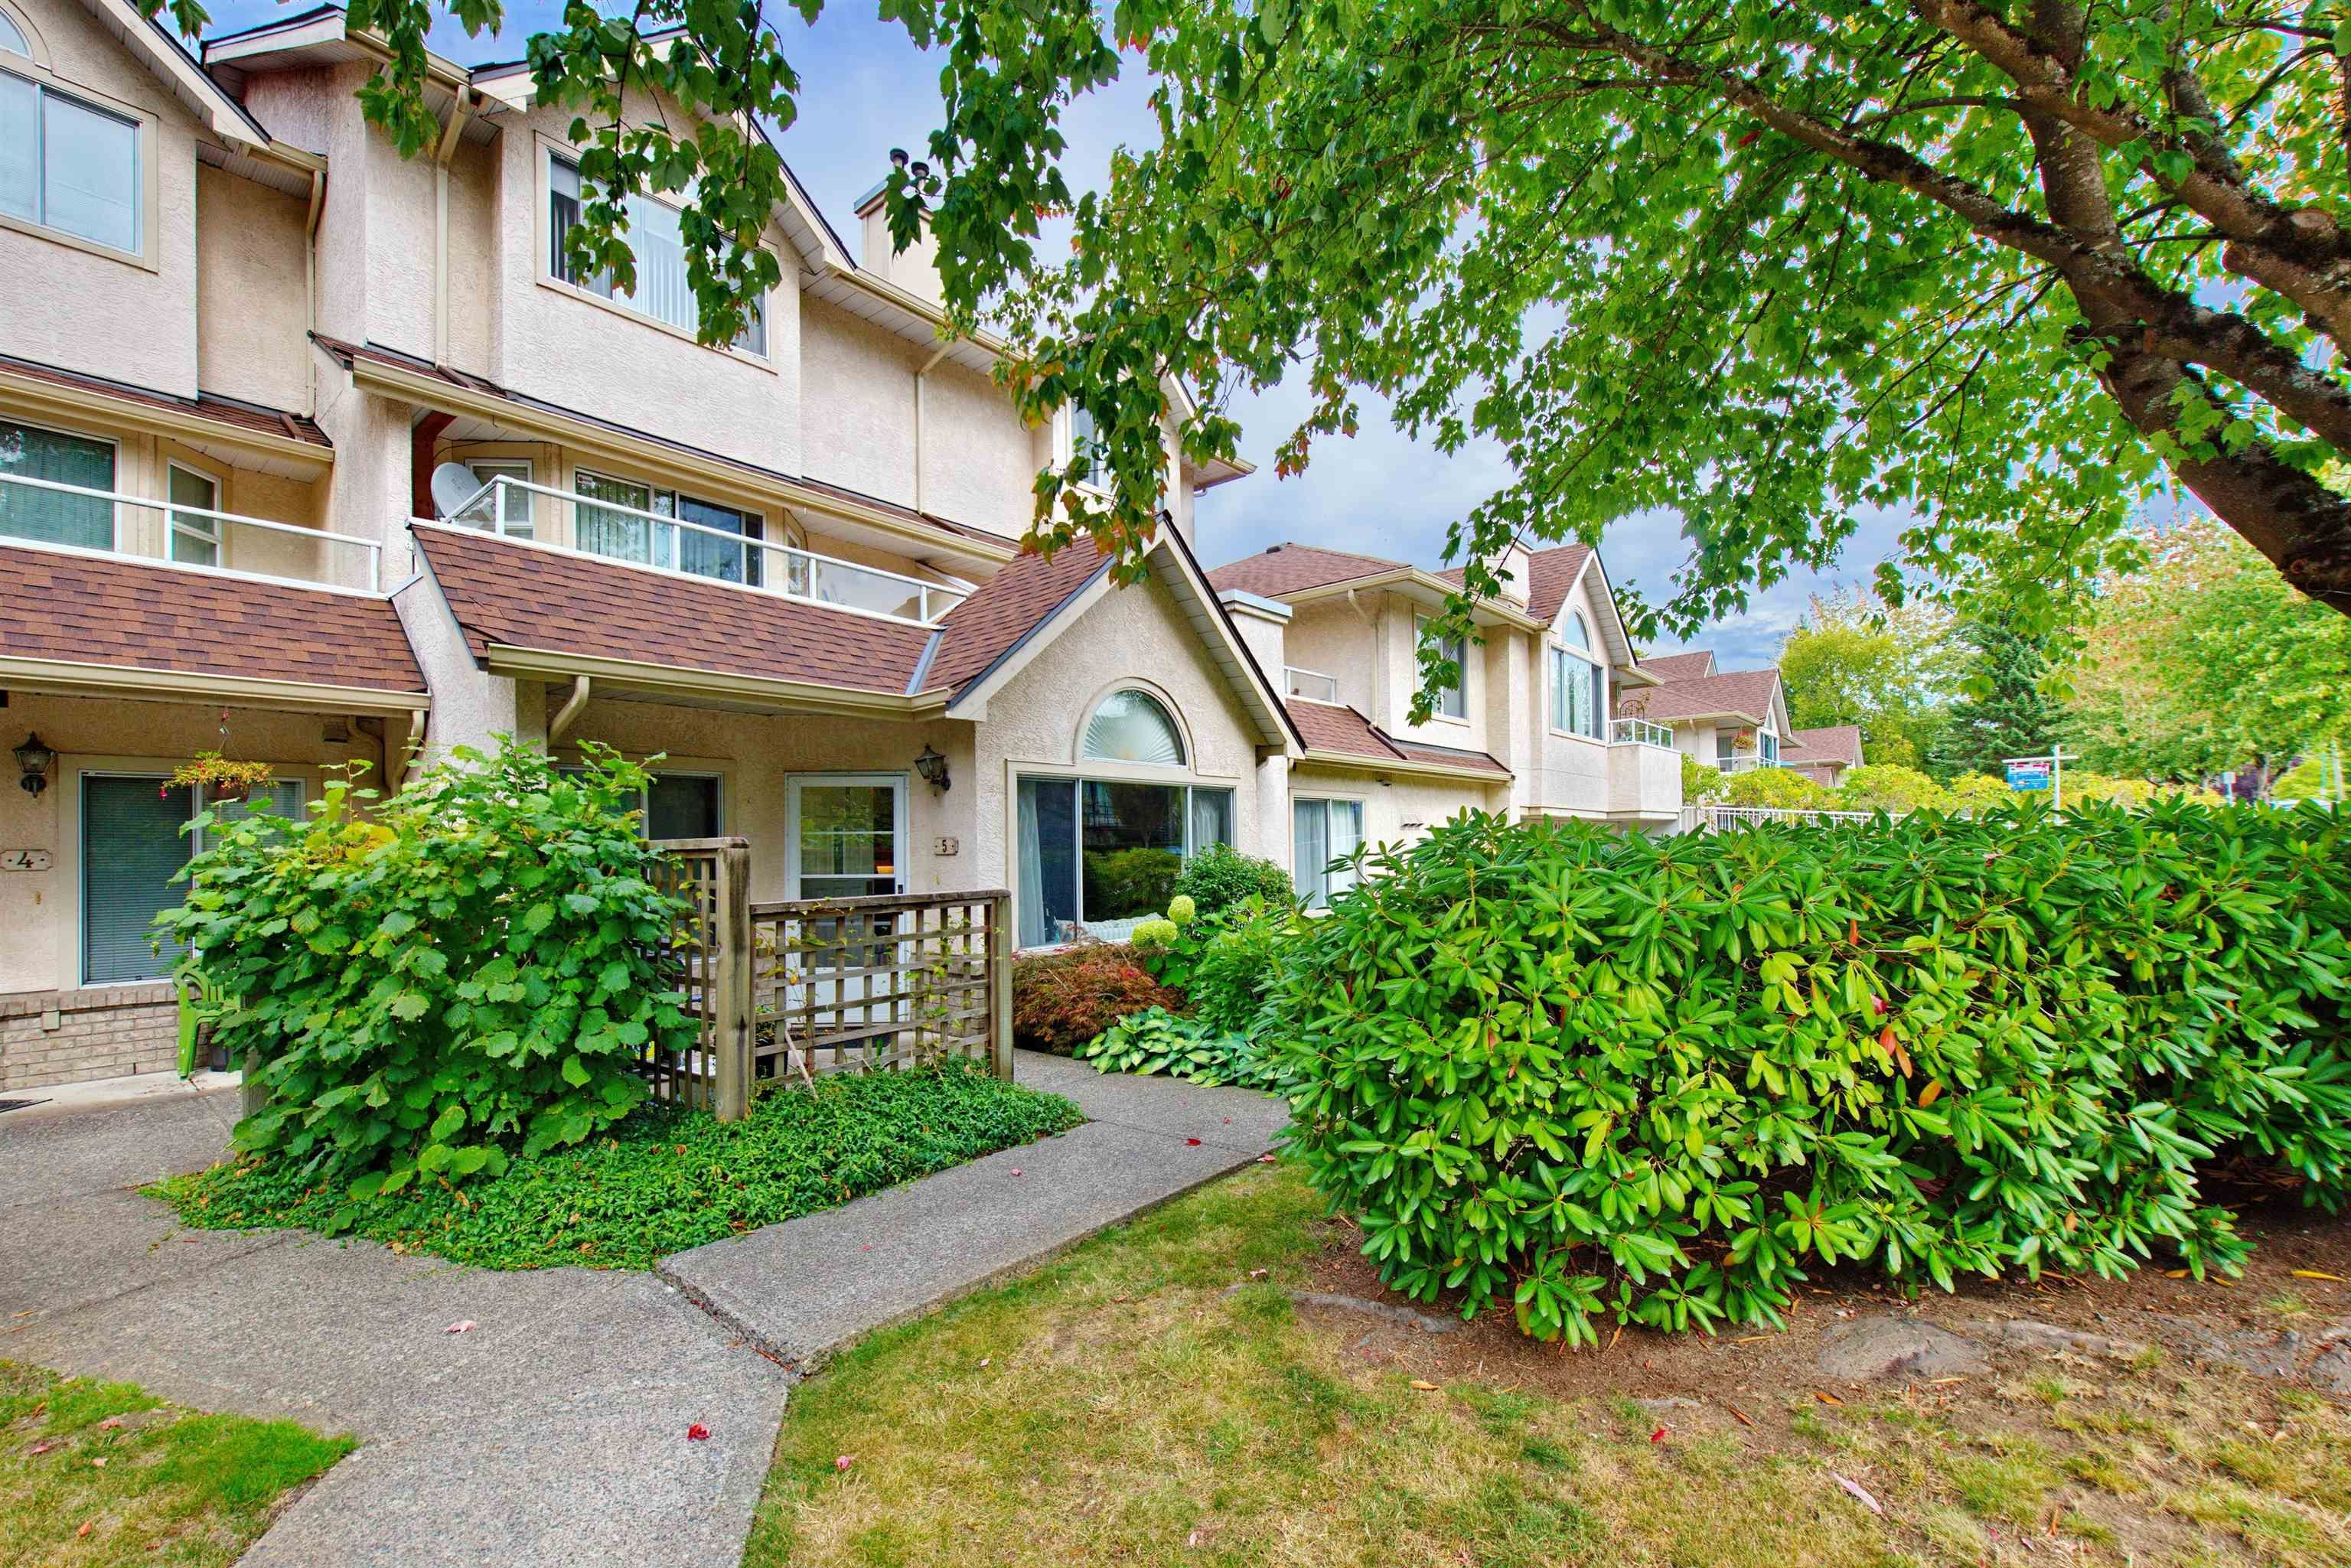 """Main Photo: 5 3701 THURSTON Street in Burnaby: Central Park BS Townhouse for sale in """"THURSTON GARDENS"""" (Burnaby South)  : MLS®# R2615333"""